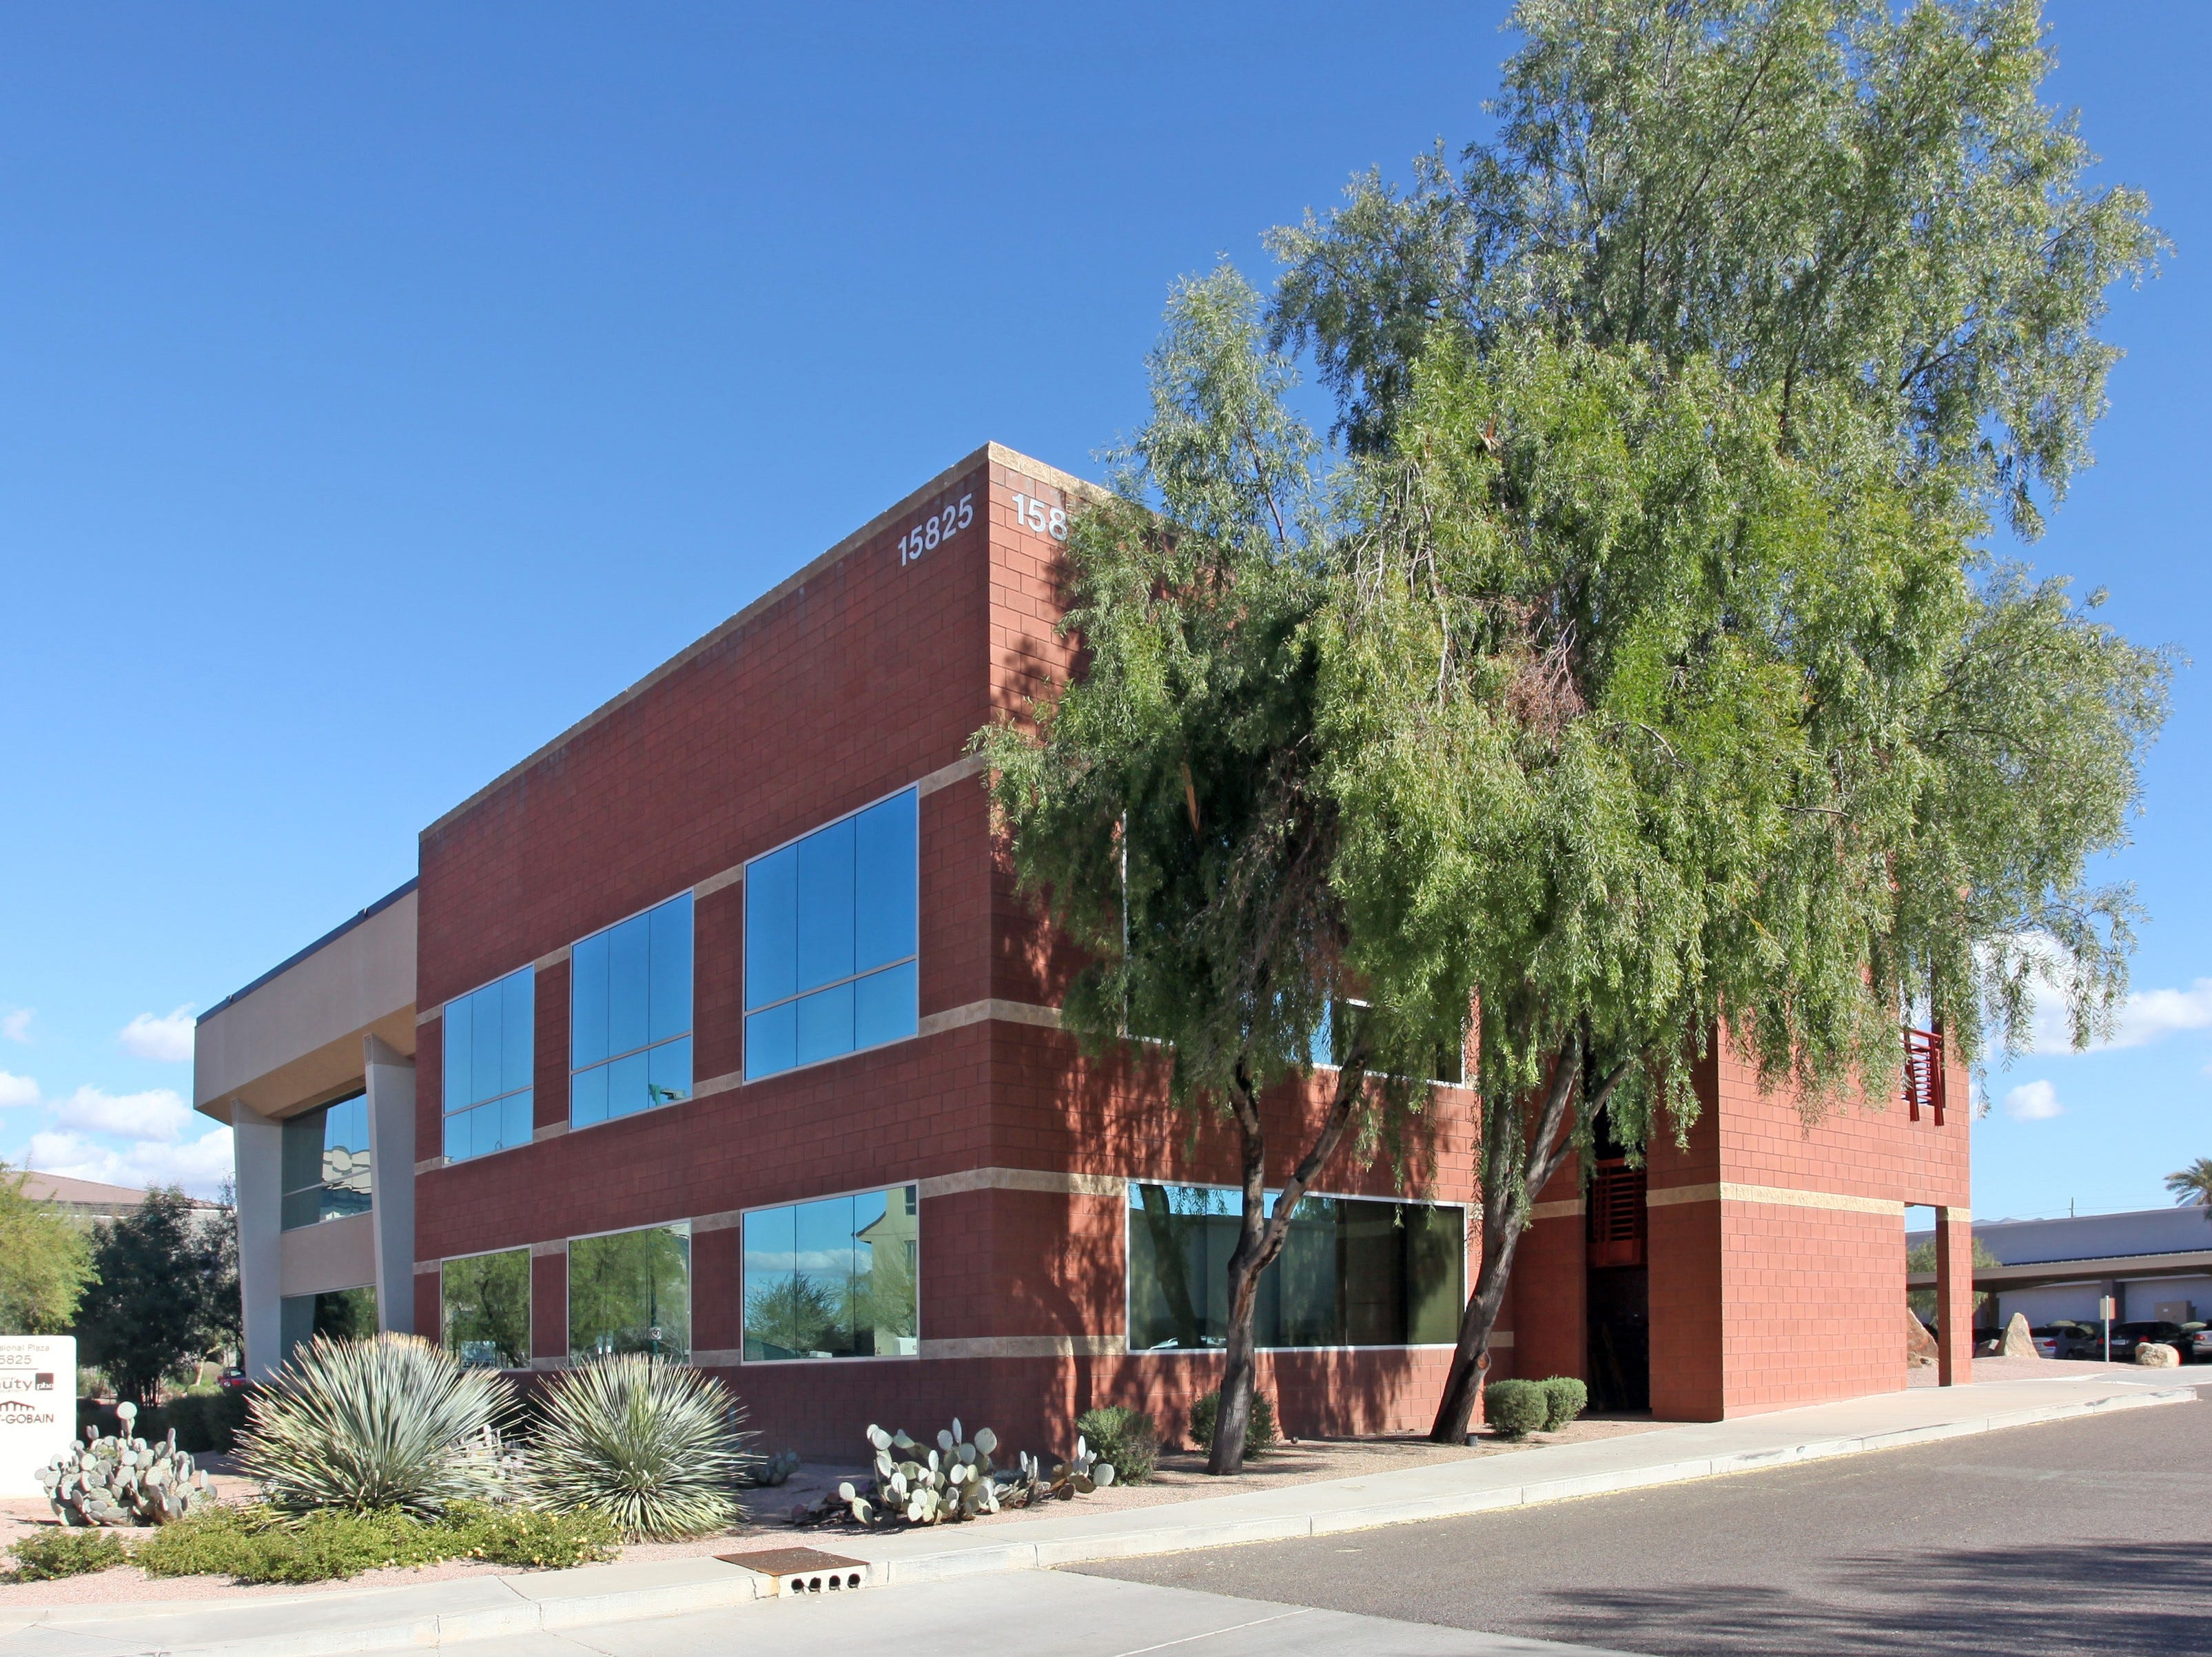 Scottsdale office building to be demolished for new Lennar apartments